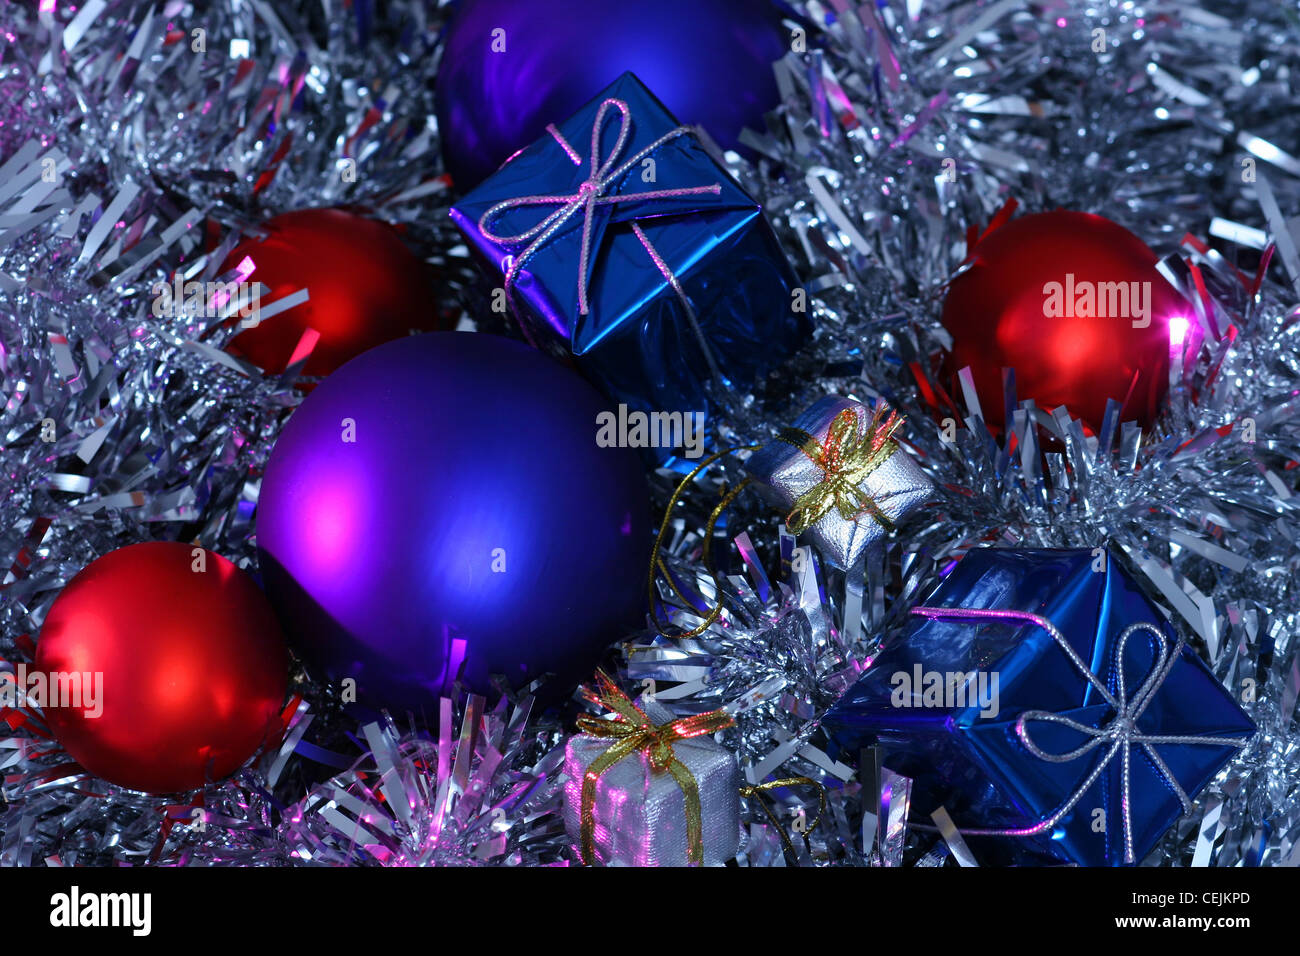 a metallic red bauble christmas tree decorations large blue metallic baubles metallic blue wrapped presents and small